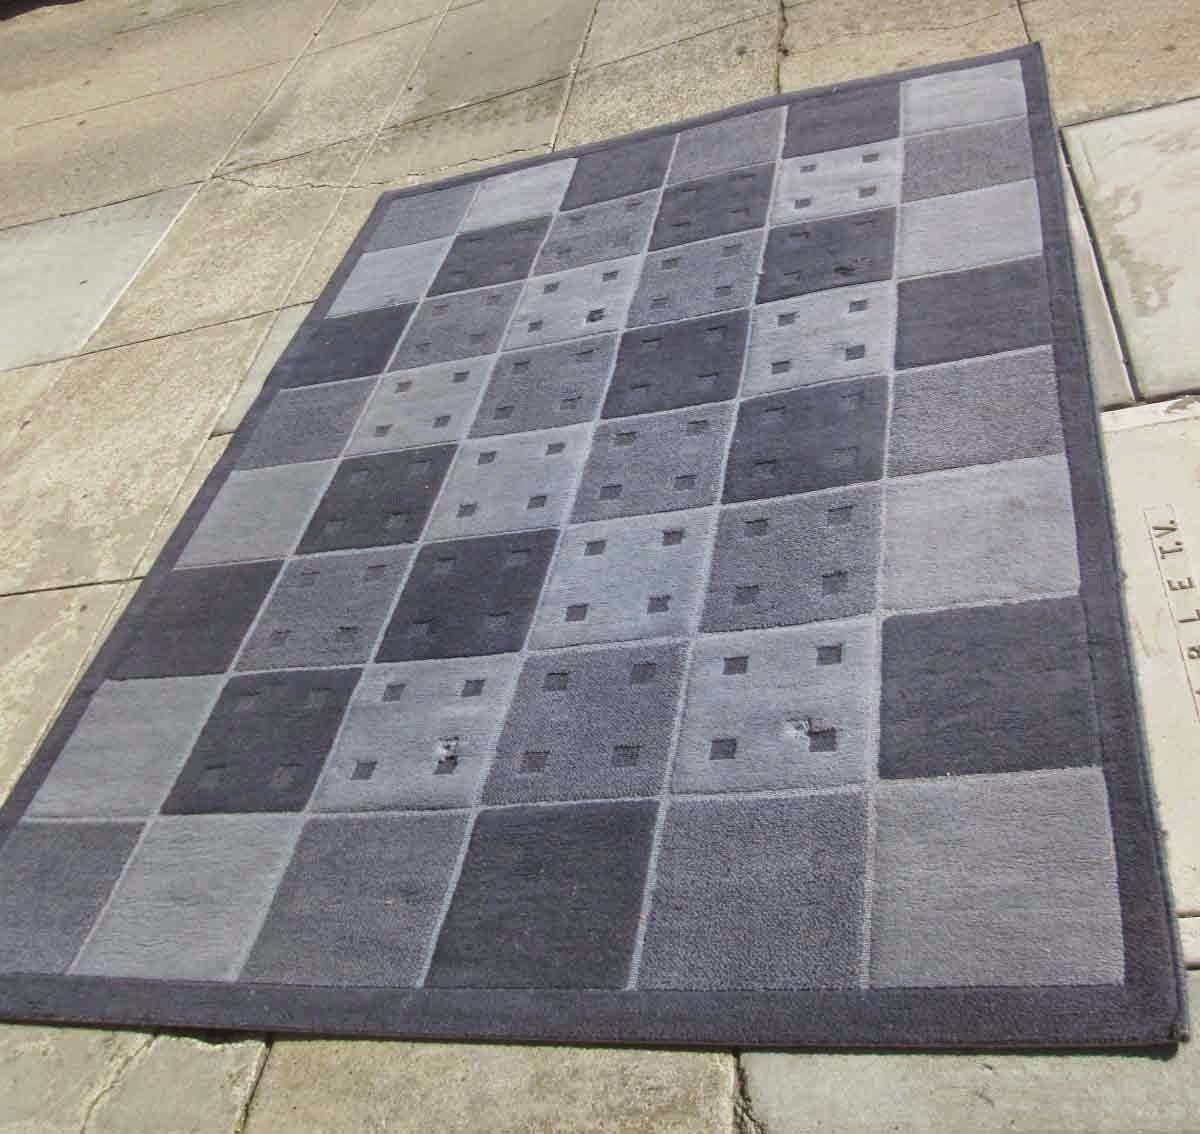 Uhuru furniture collectibles sold reduced checkered blue area rug 20 - Checkerboard area rug ...